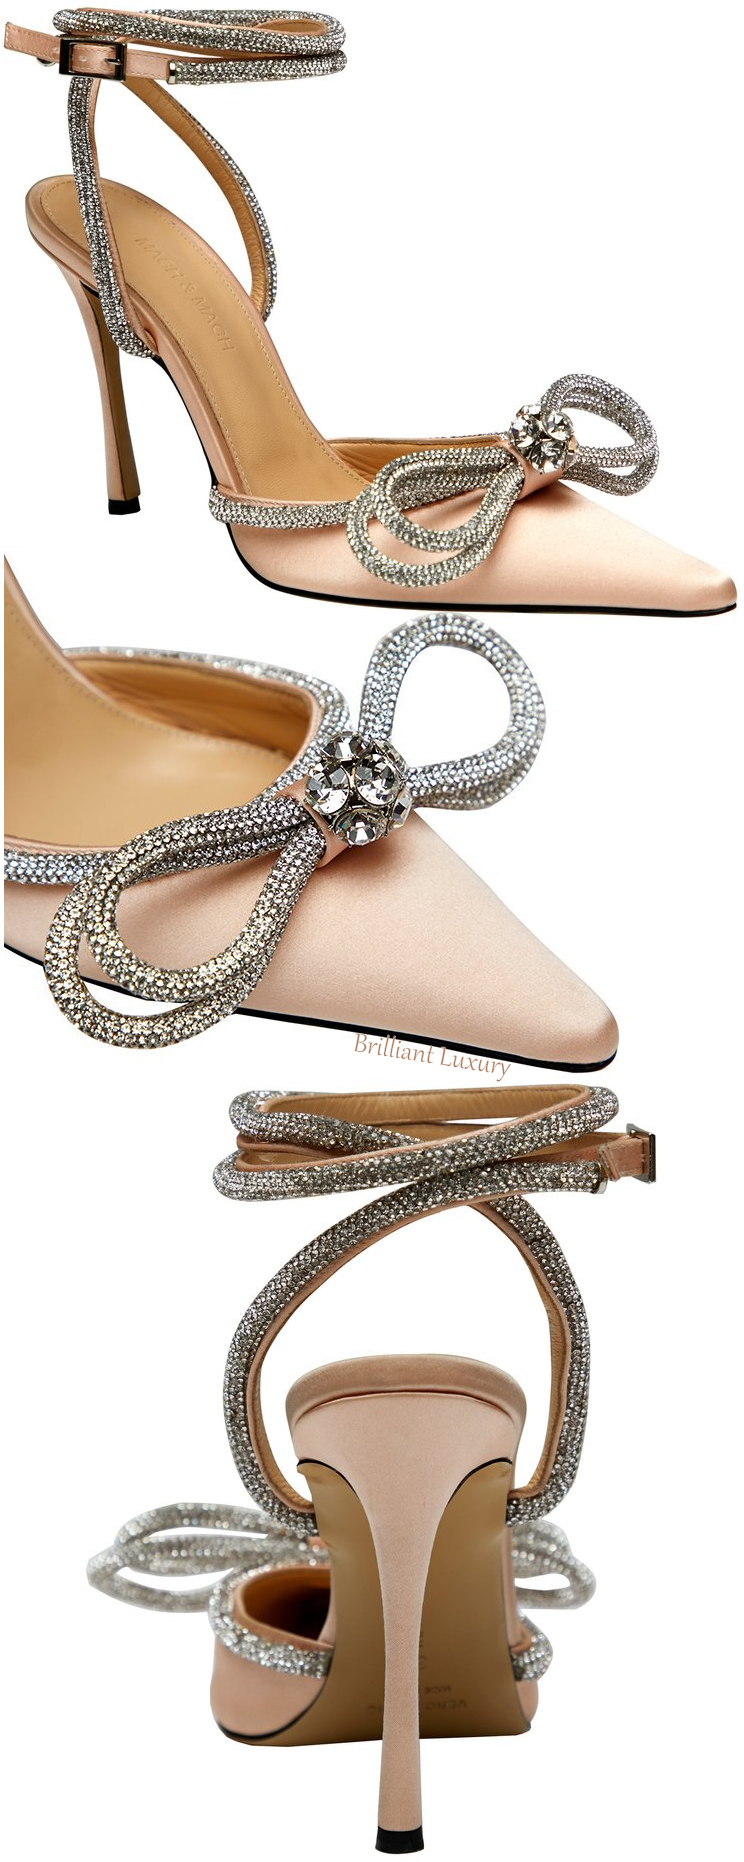 Mach & Mach neutral crystal double bow pump #brilliantluxury